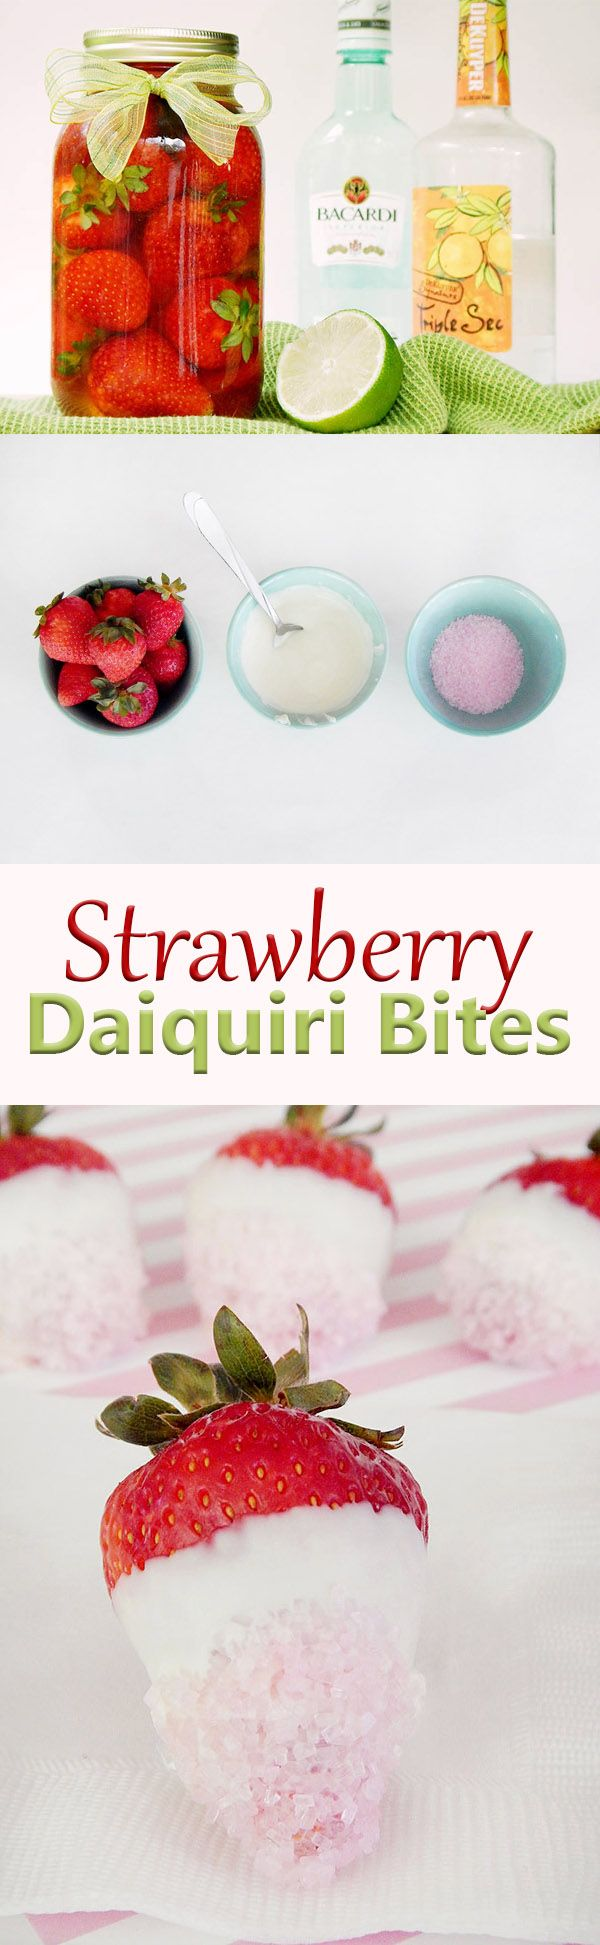 Strawberries soaked in rum, triple sec, and a splash of fresh lime juice then dipped in white chocolate and sparkling sugar. Strawberry Daiquiri Bites are perfect for picnics, parties, bachelorette celebrations, and more! Unique shots.